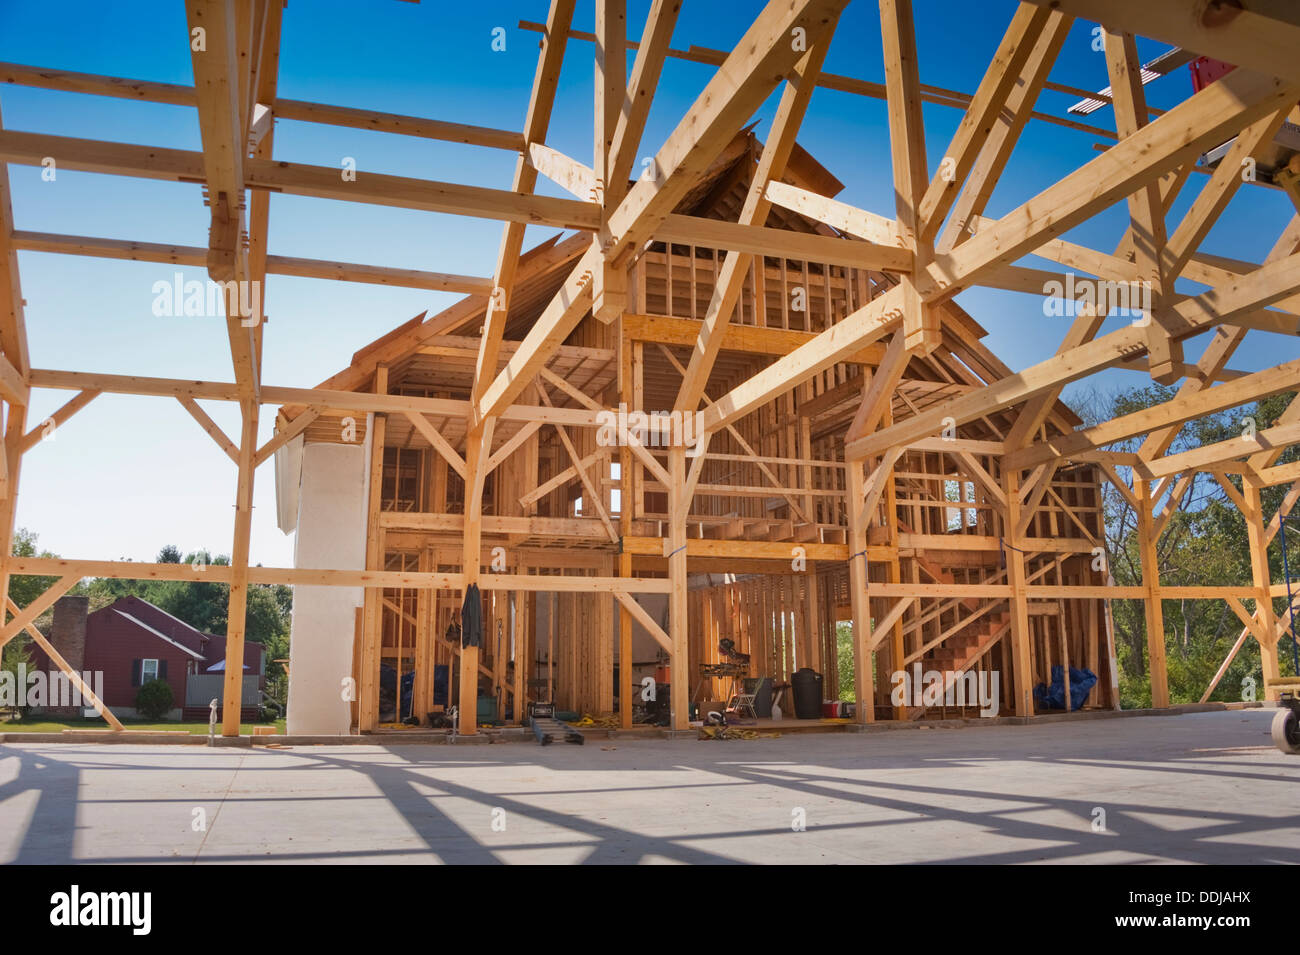 New house construction in the post and beam style - Stock Image